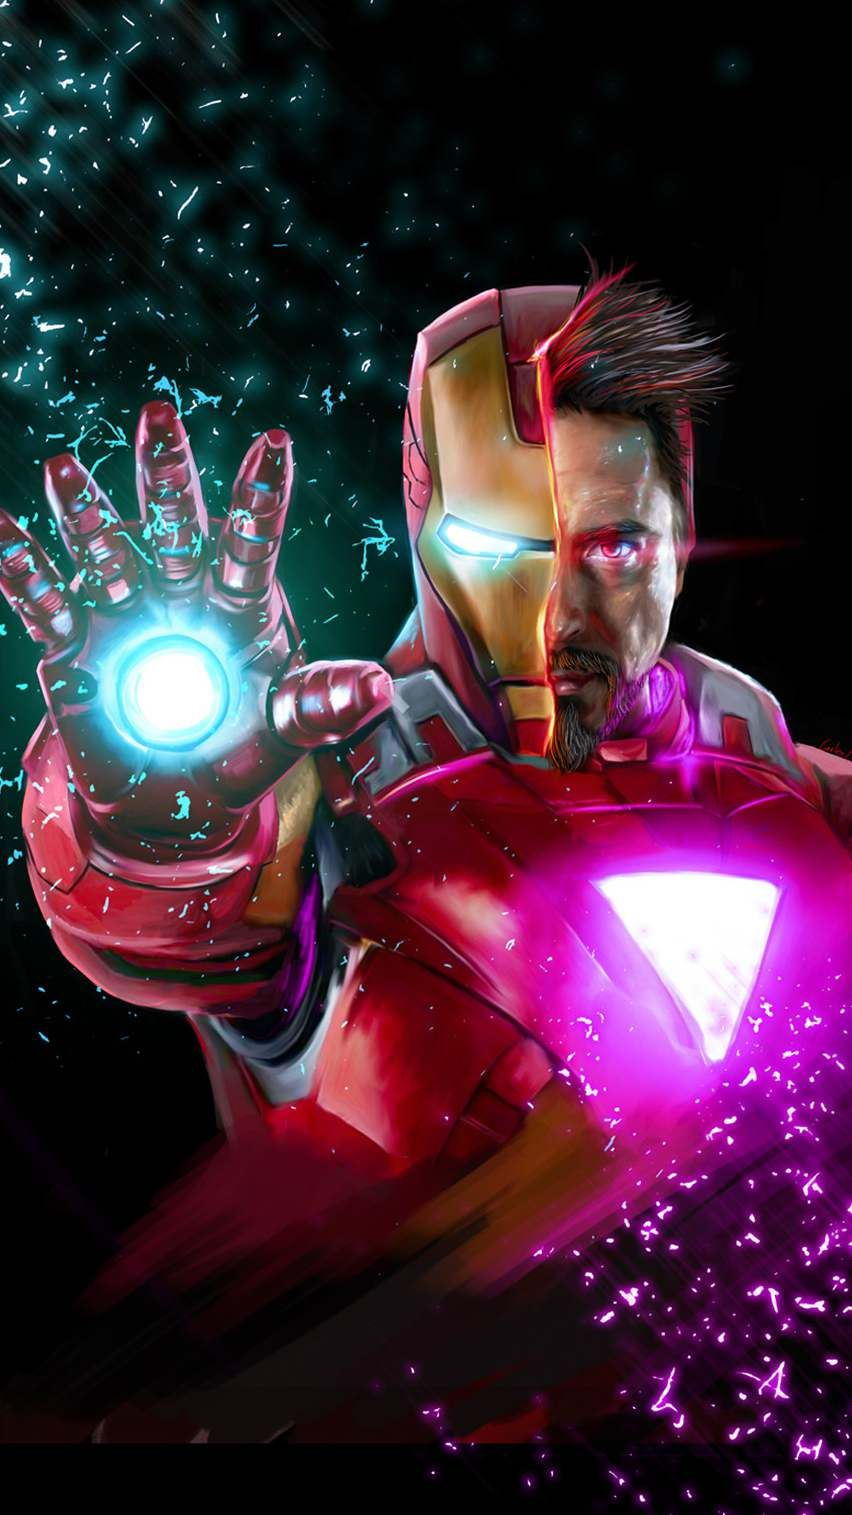 Avengers Endgame Tony Stark Iron Man Iphone Wallpaper Iron